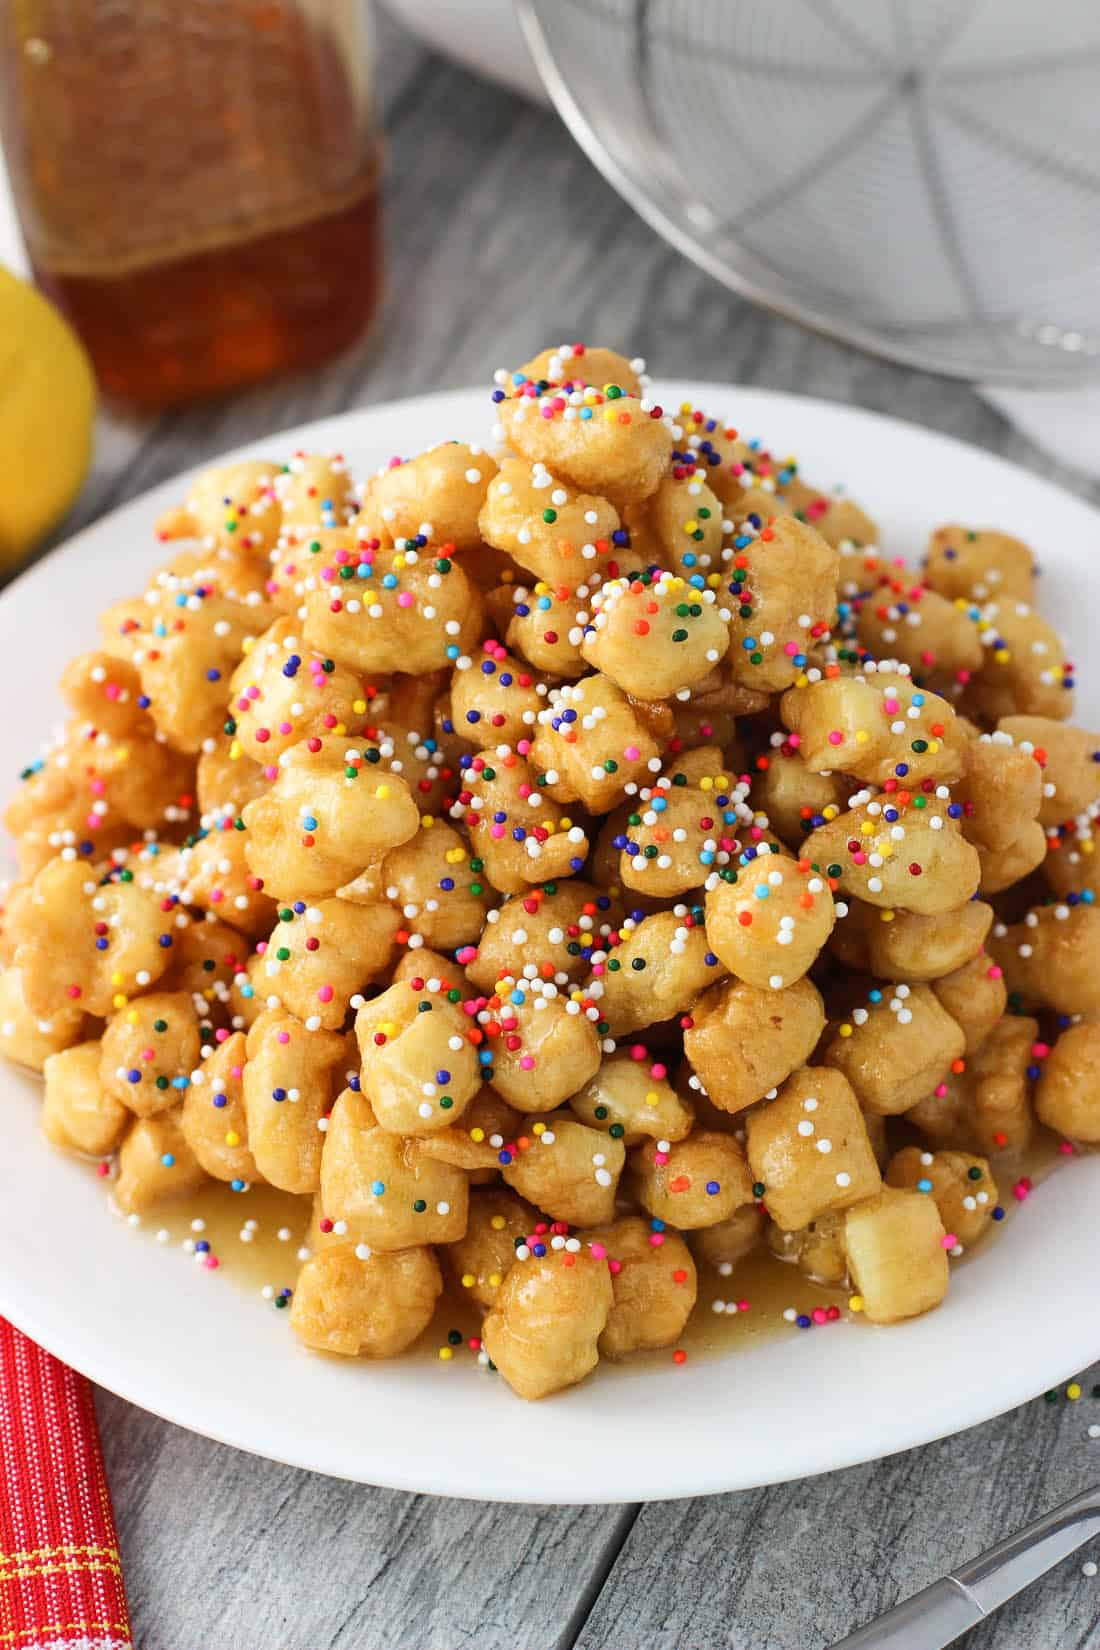 A pile of honey balls on a plate, covered in honey and nonpareil sprinkles